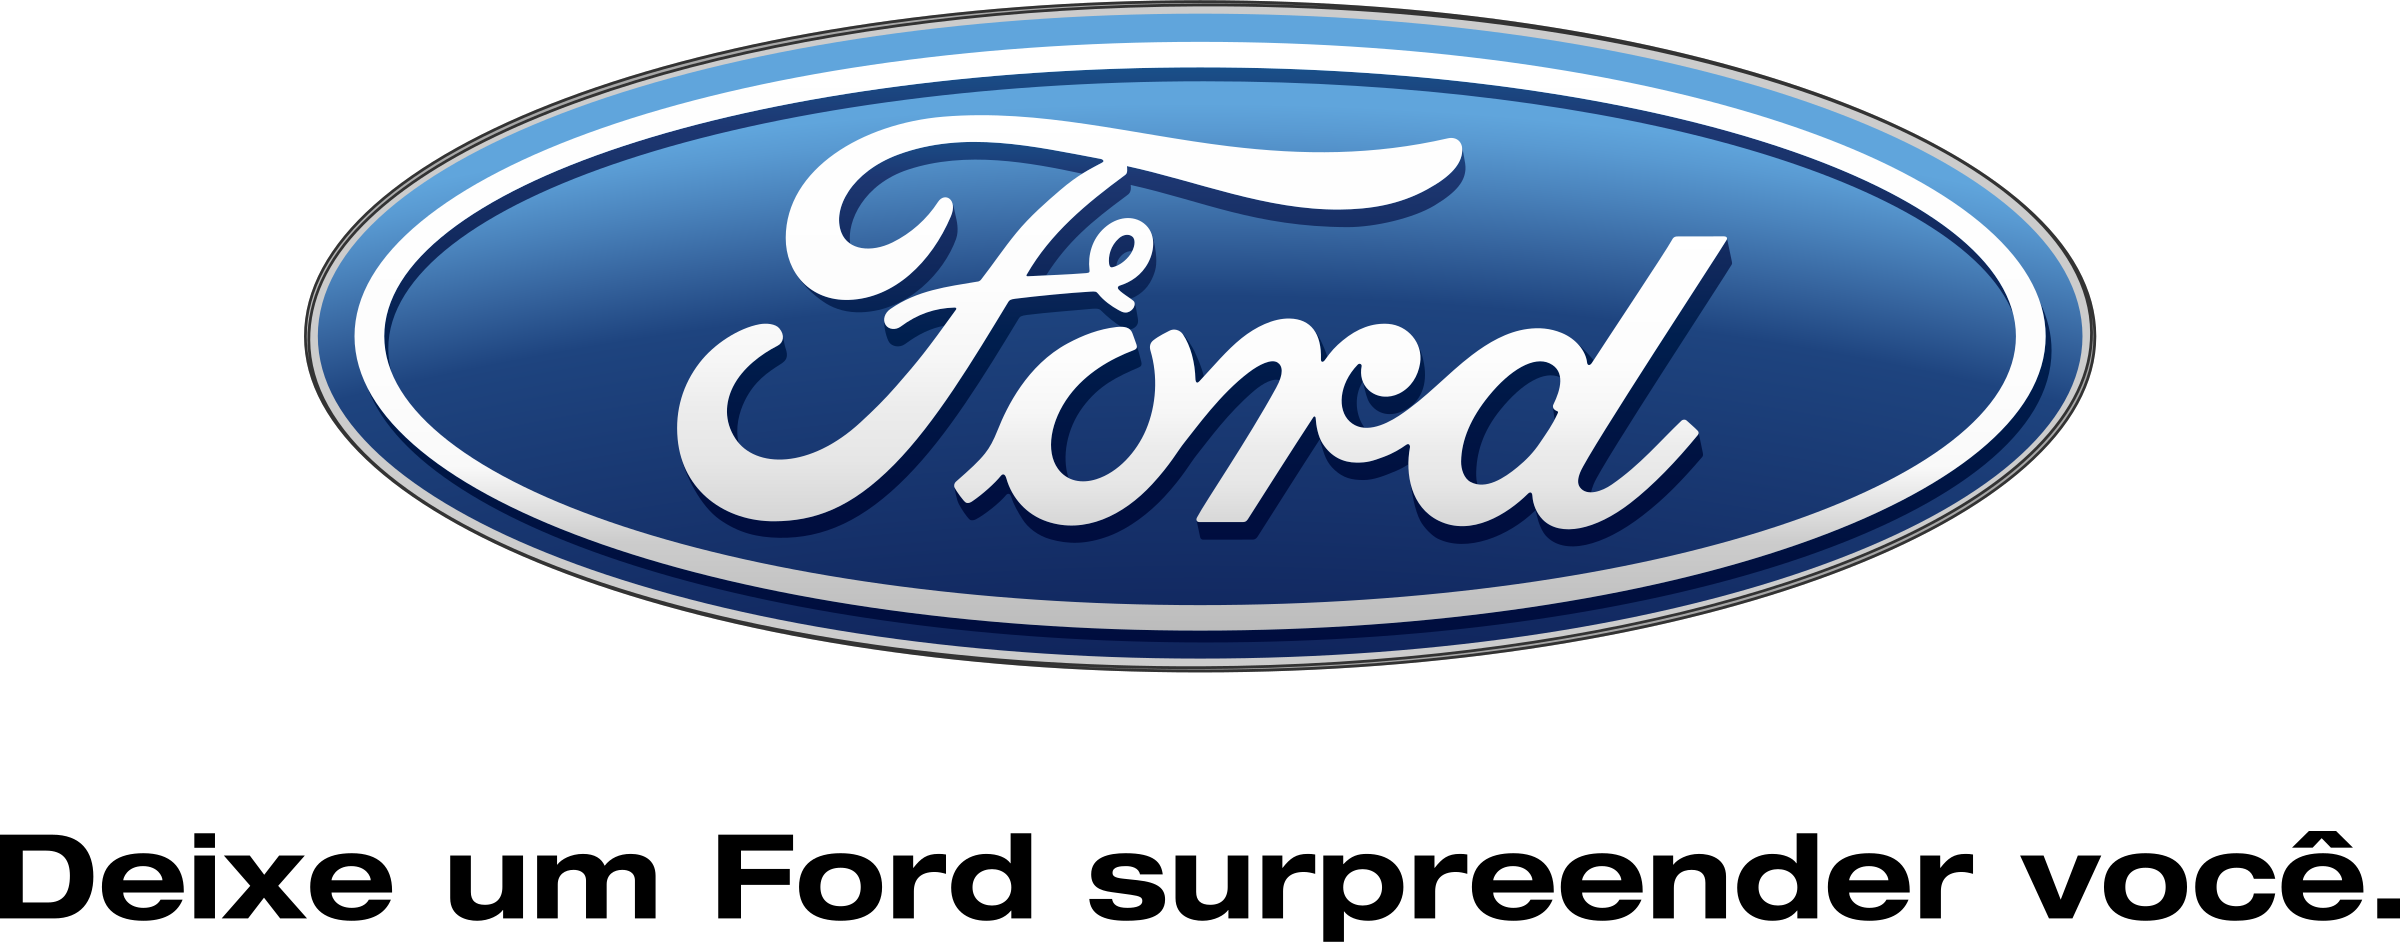 Ford logo png. Transparent svg vector freebie